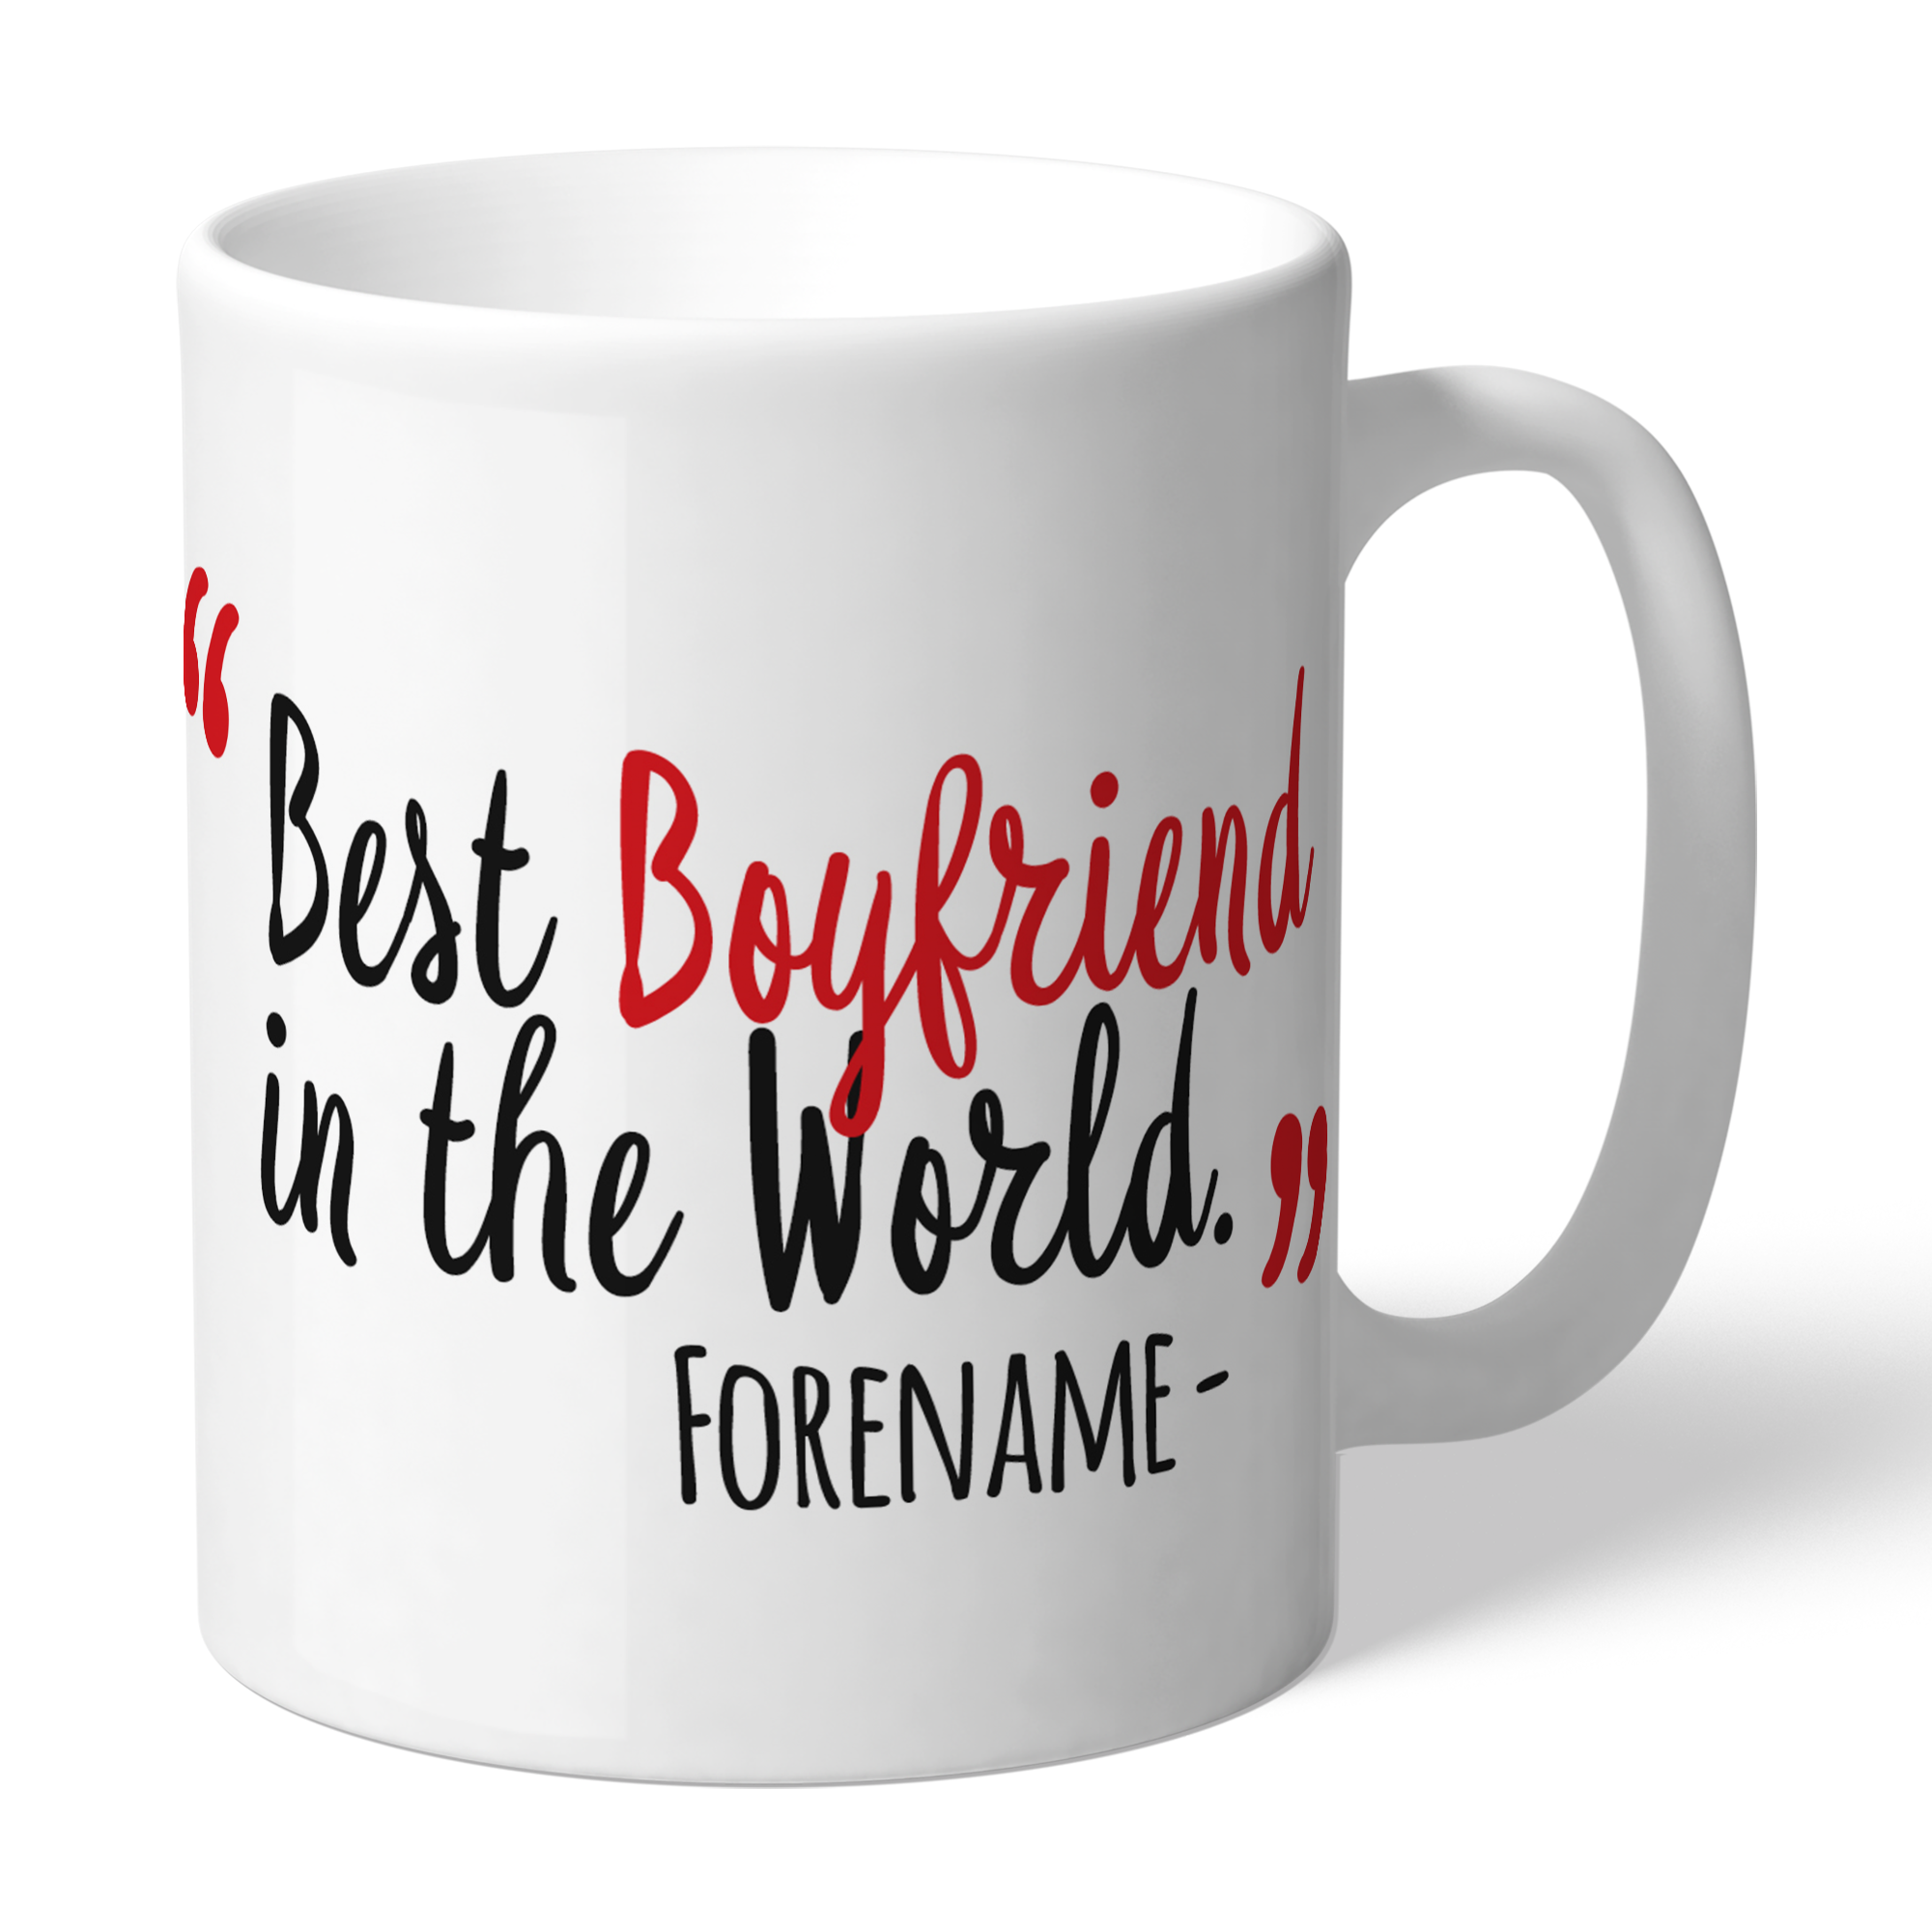 Southampton FC Best Boyfriend In The World Mug